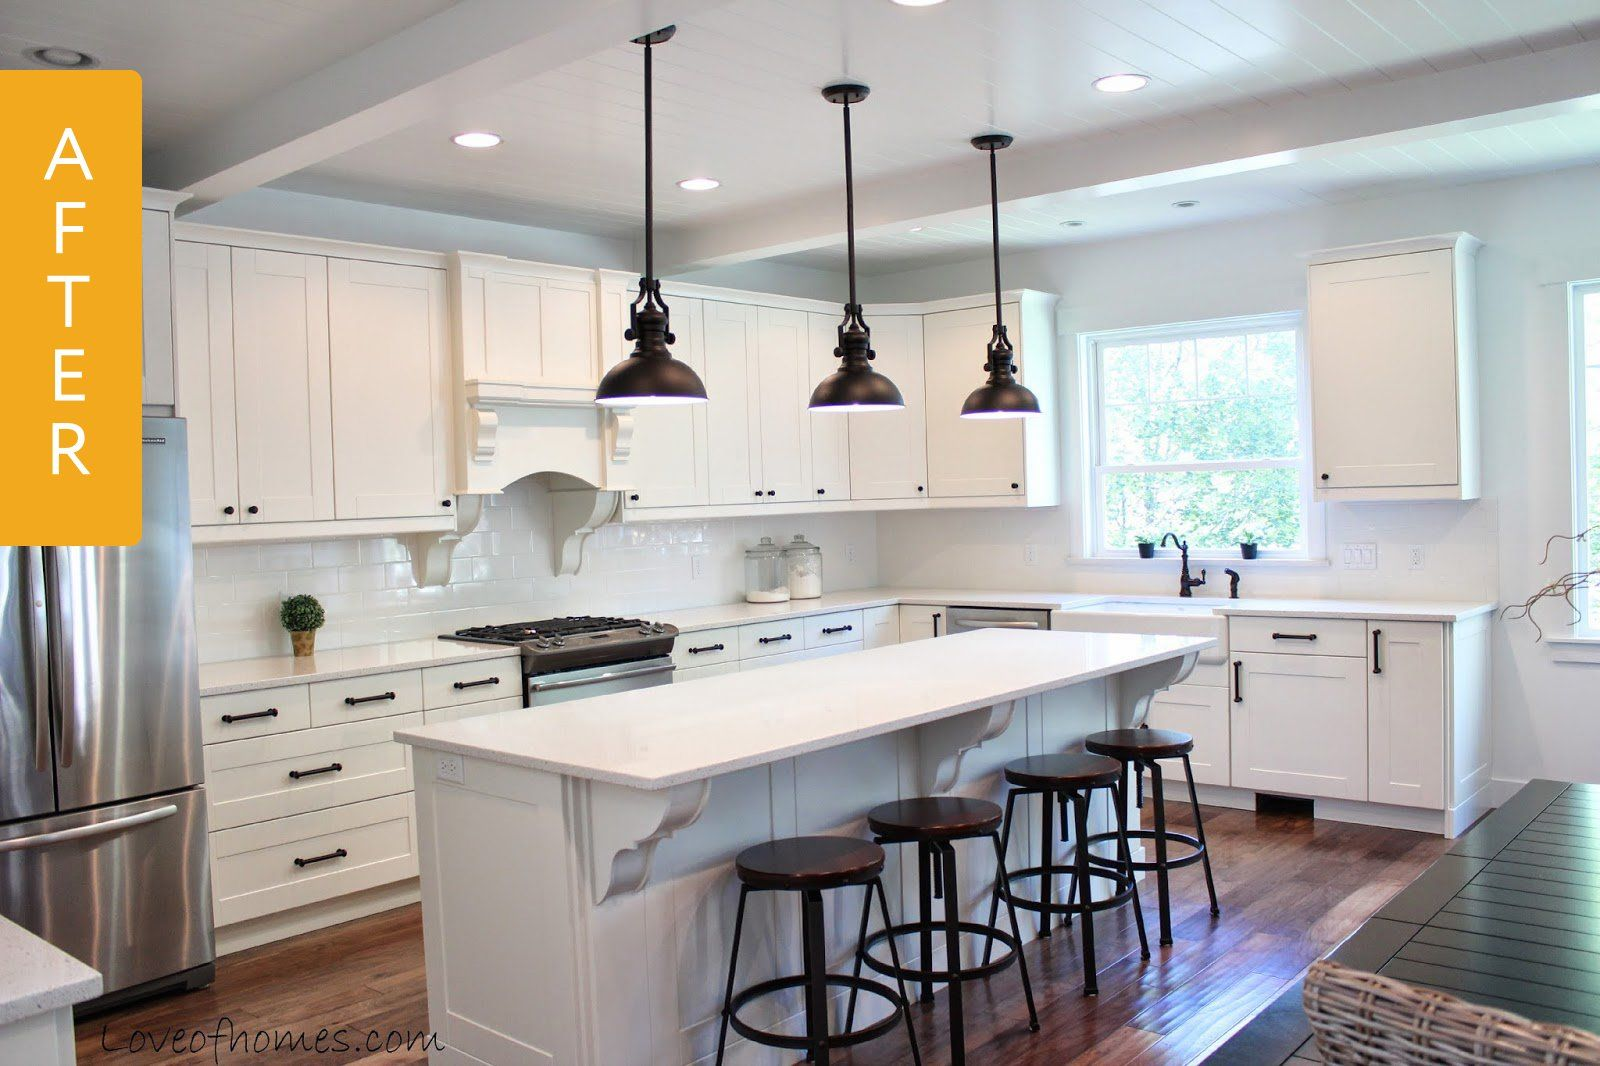 Kitchen Remodeling Leads Captivating Kitchen Before & After A Chaotic Remodel Leads To A Big Payoff . Design Ideas